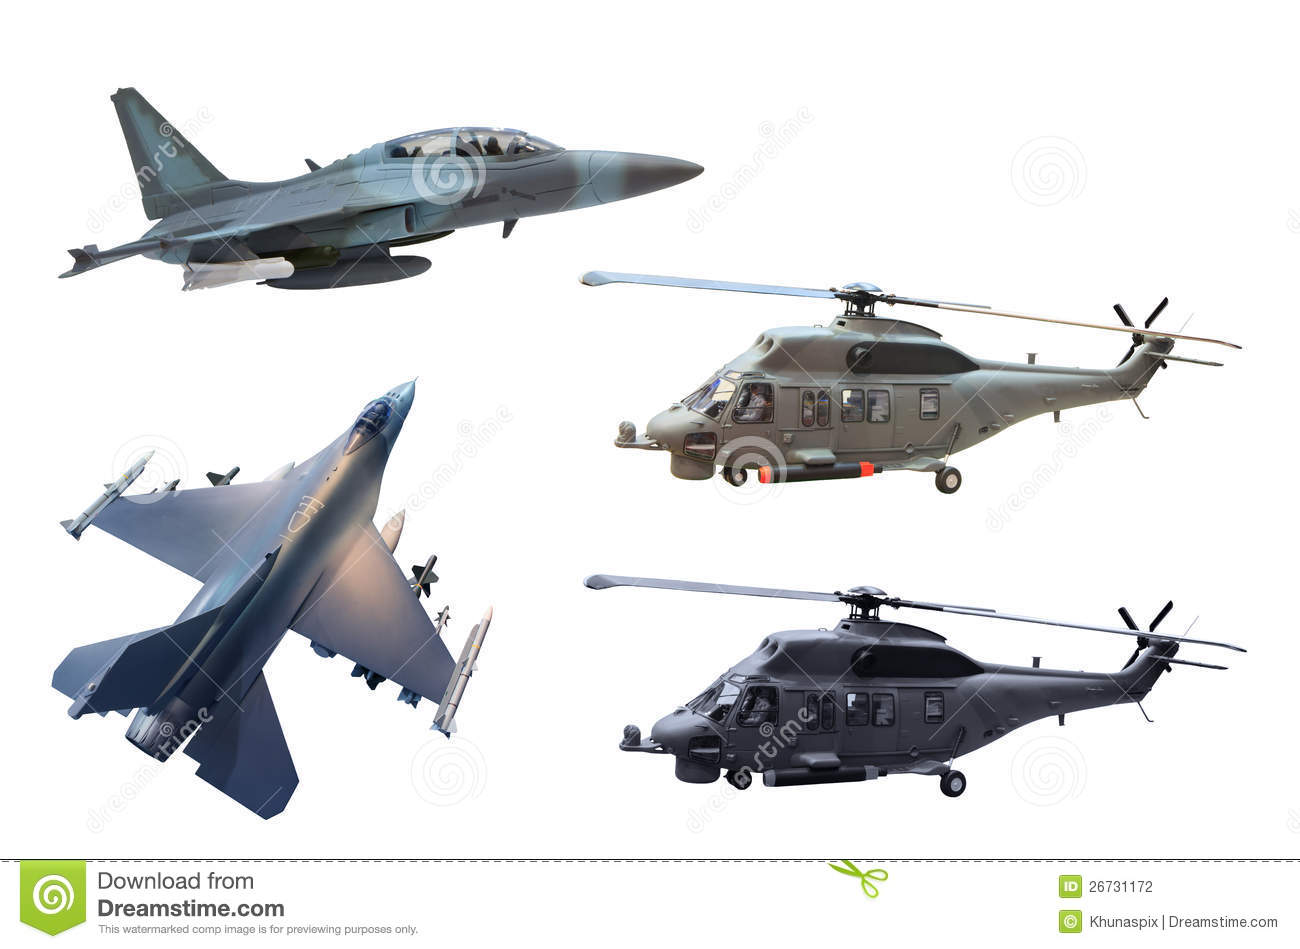 Military Jet Plane And Helicopter Stock Photography - Image: 26731172